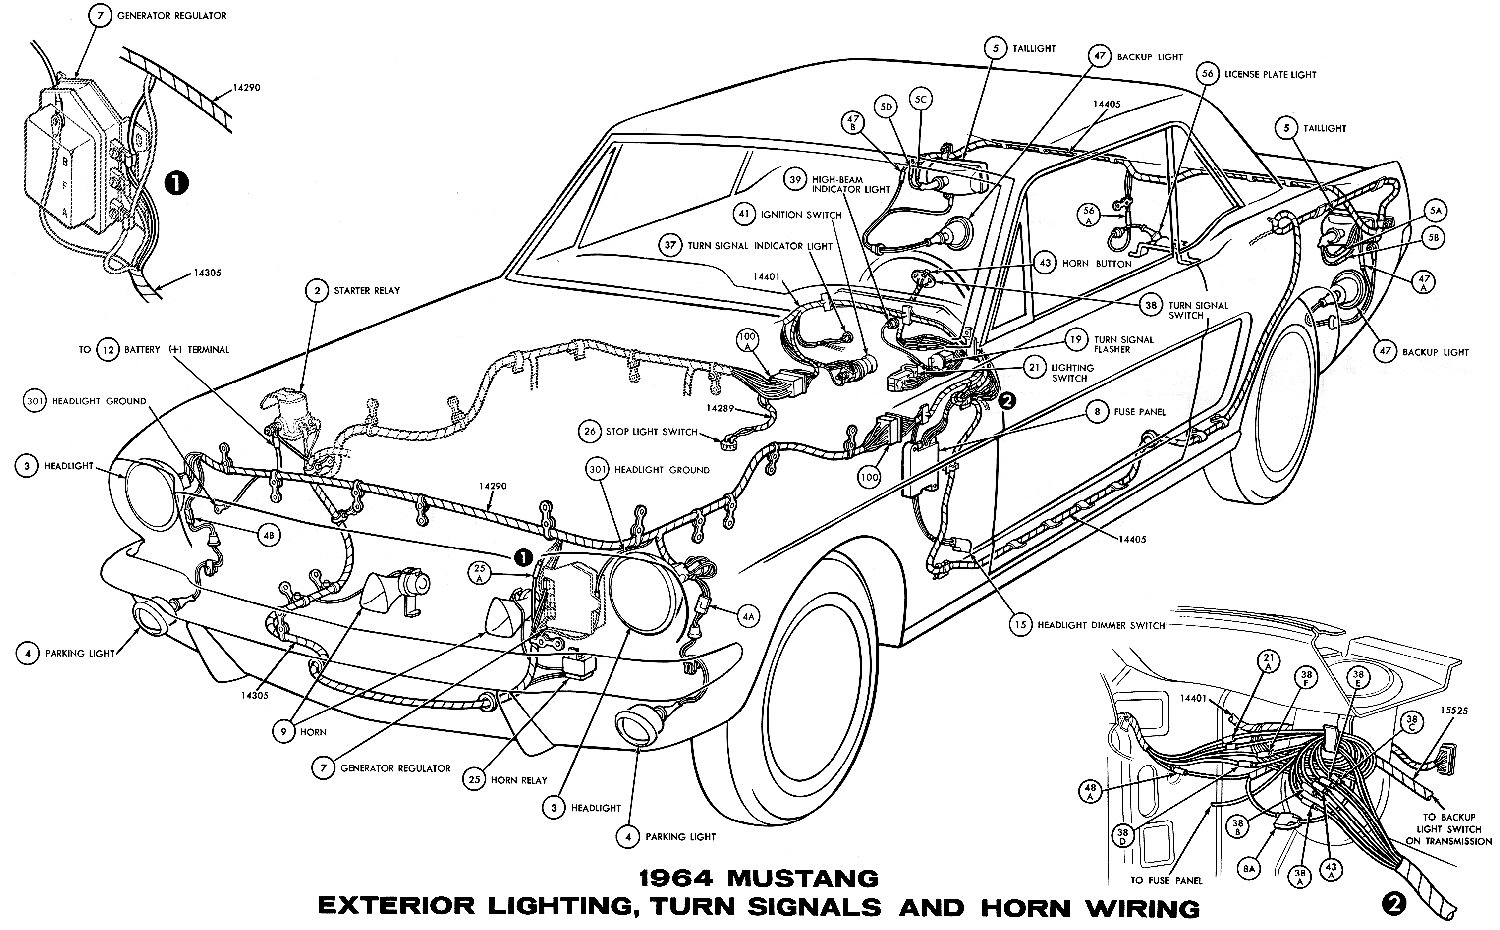 1964 Mustang Wiring Diagrams Average Joe Restoration Peugeot 206 Fuse Box Heater Sm1964h